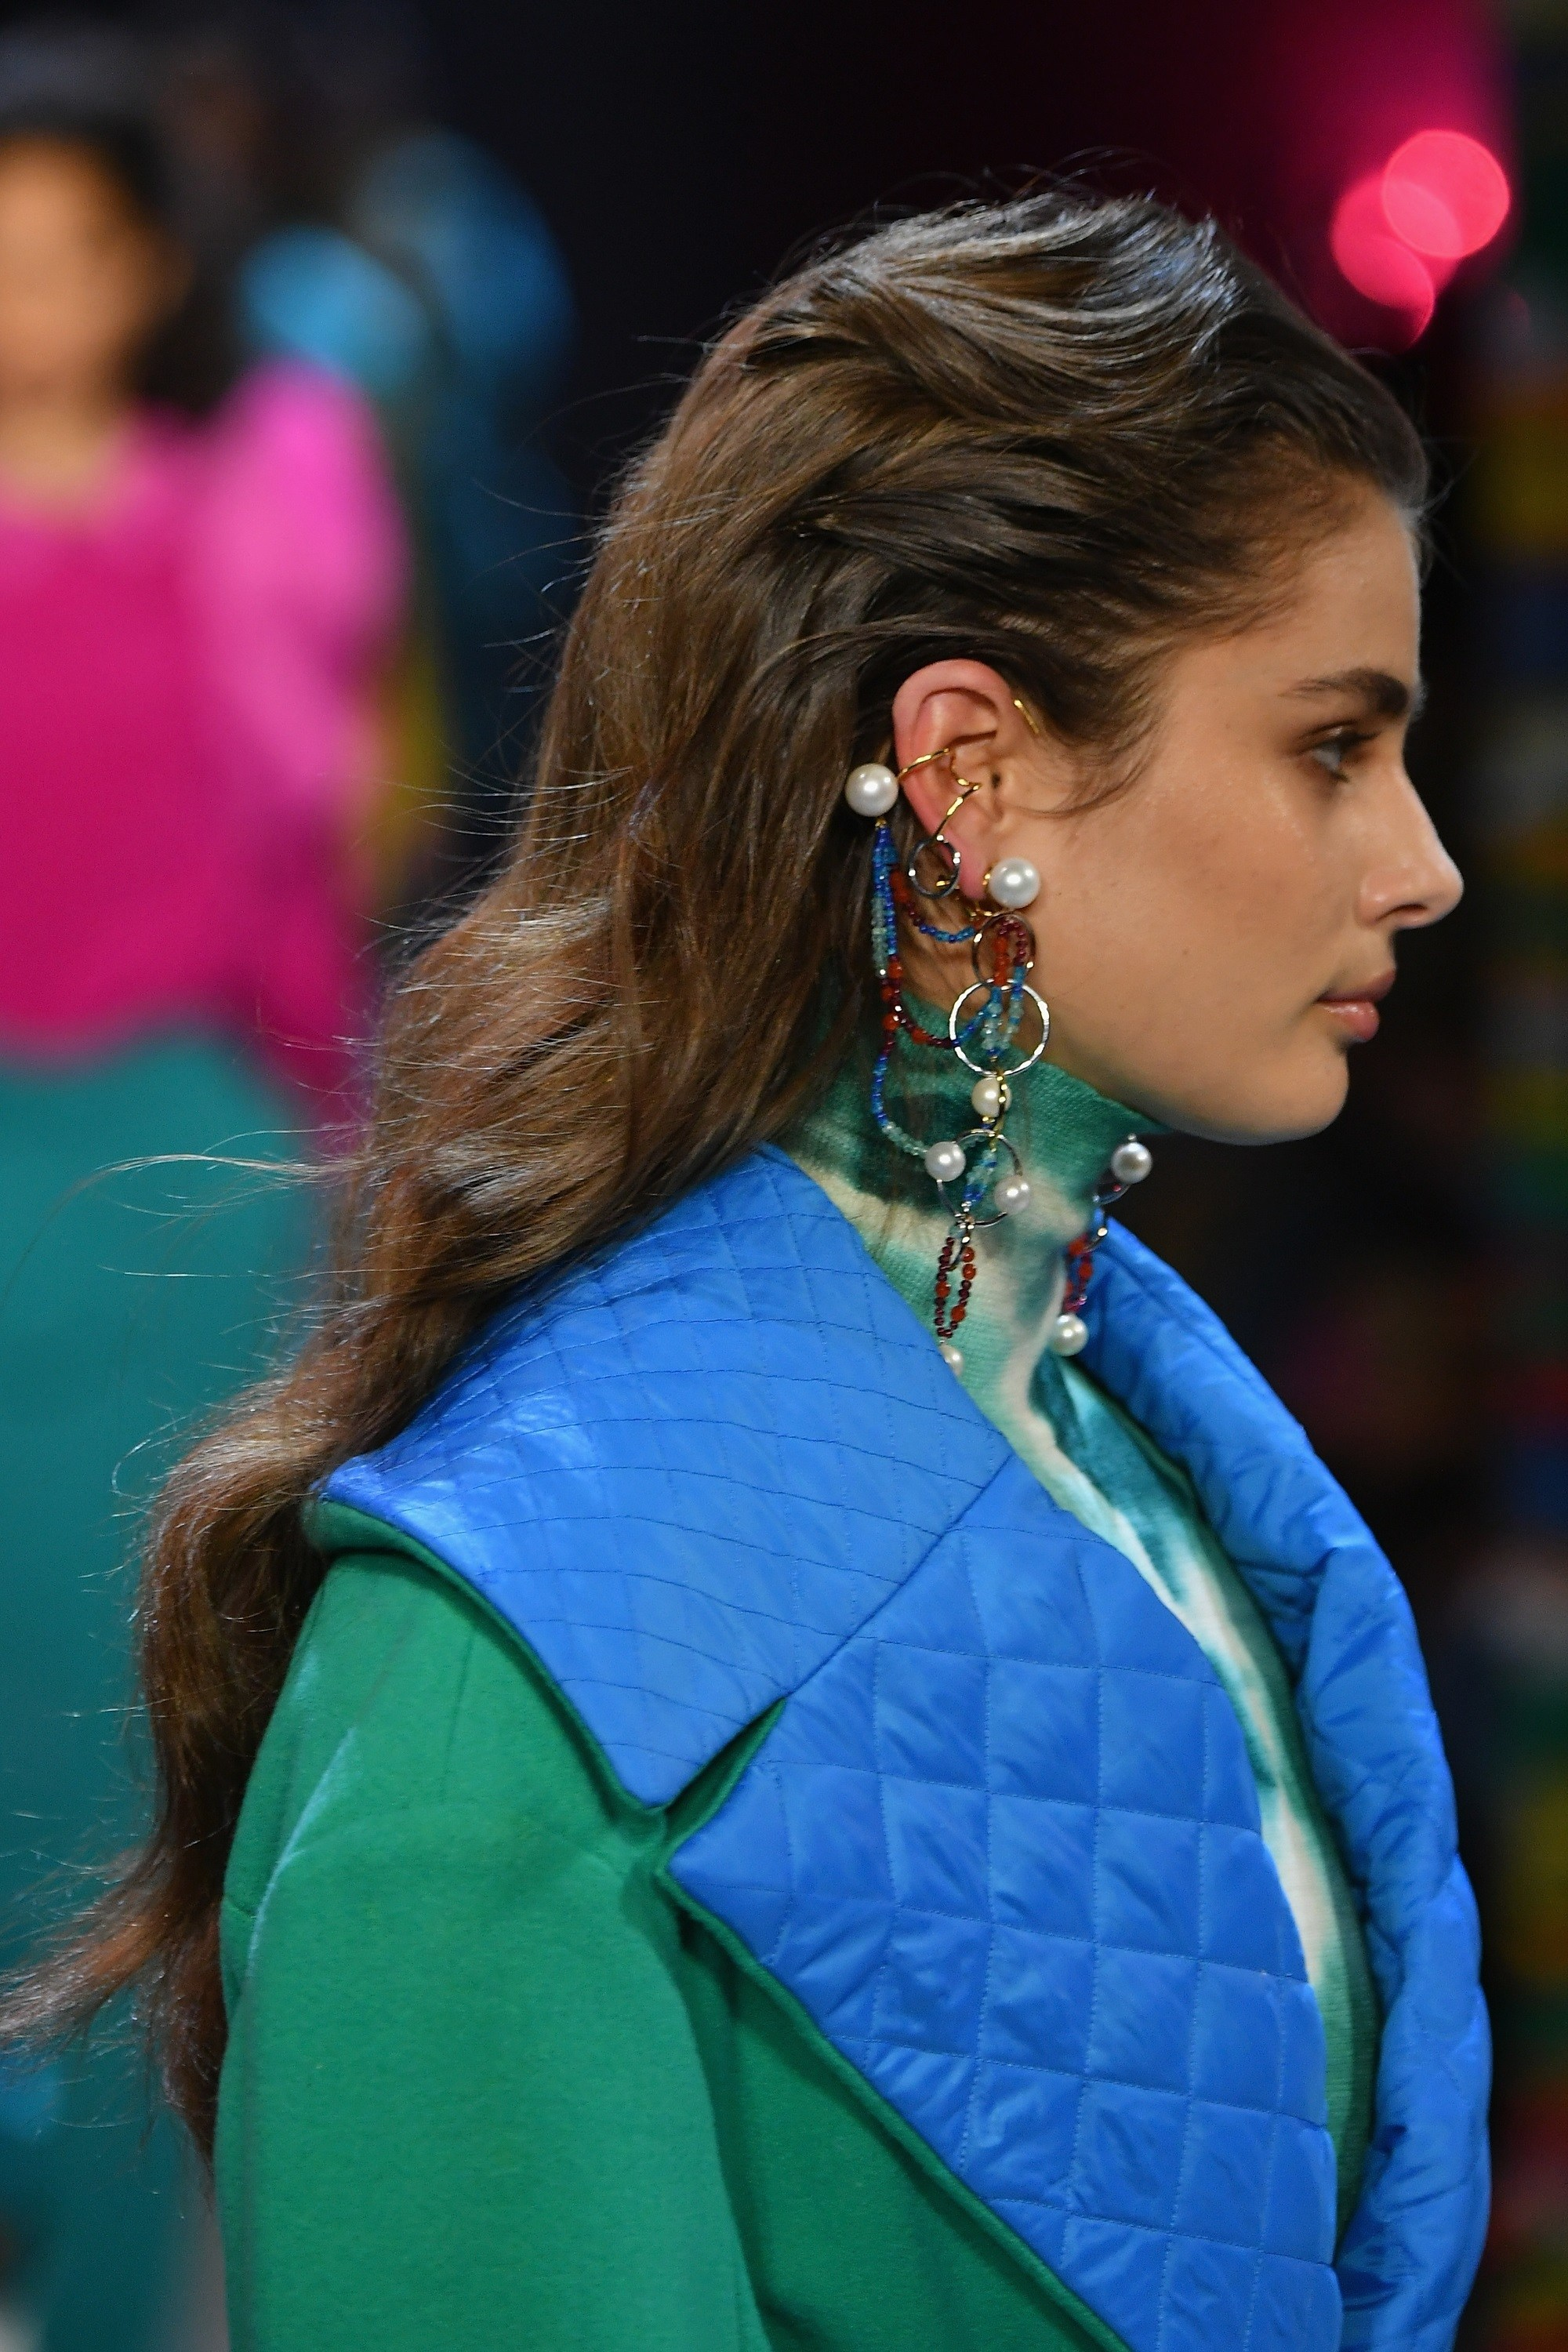 NYFW Hair must-haves: Side view of a model with long dark brown wavy hair wearing a blue vest and green top